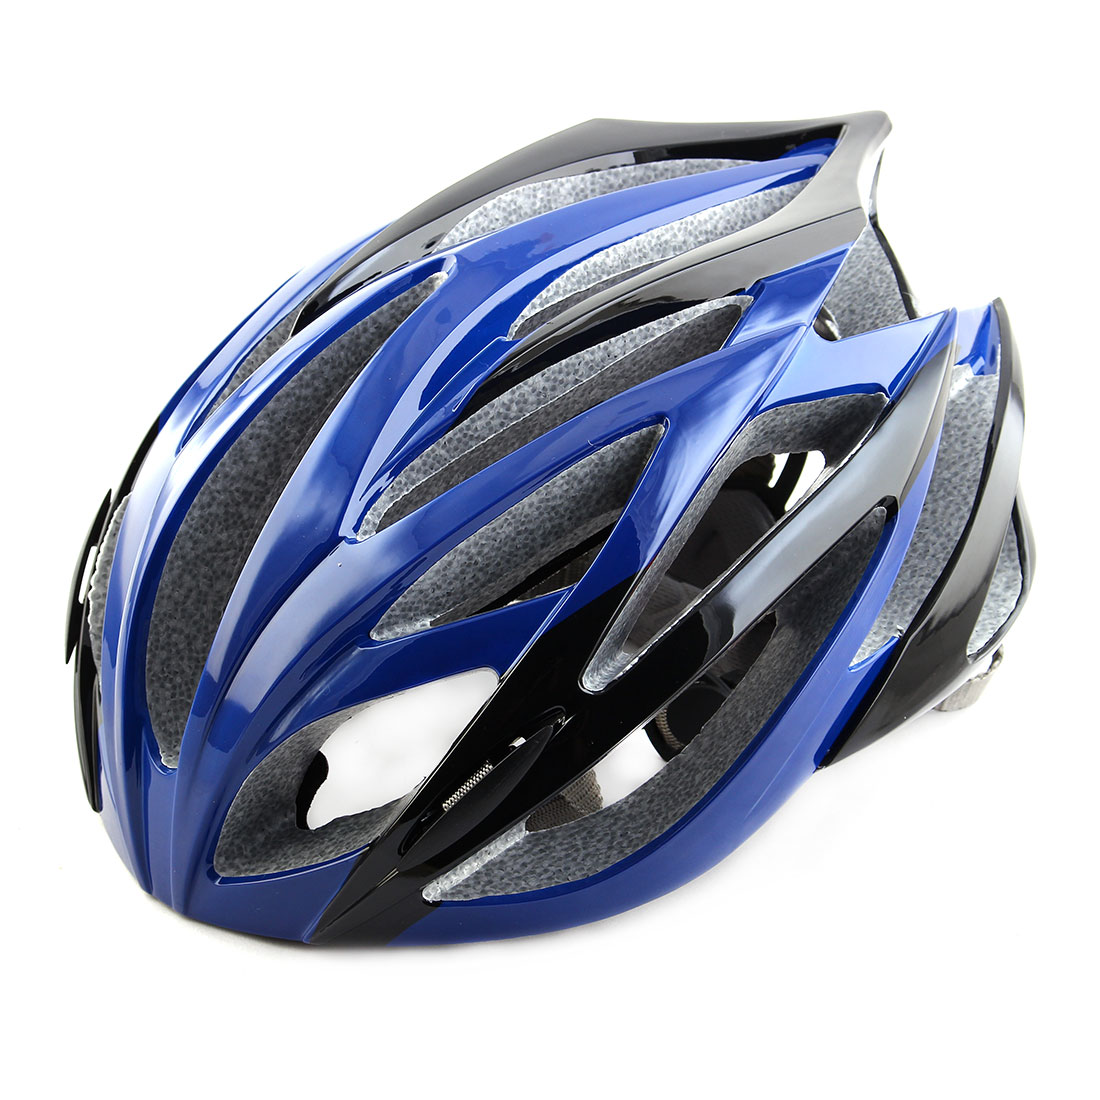 Adult Unisex Head Protector Cycling Cap Bicycle Hat Adjustable Safety Bike Helmet Sapphire Blue